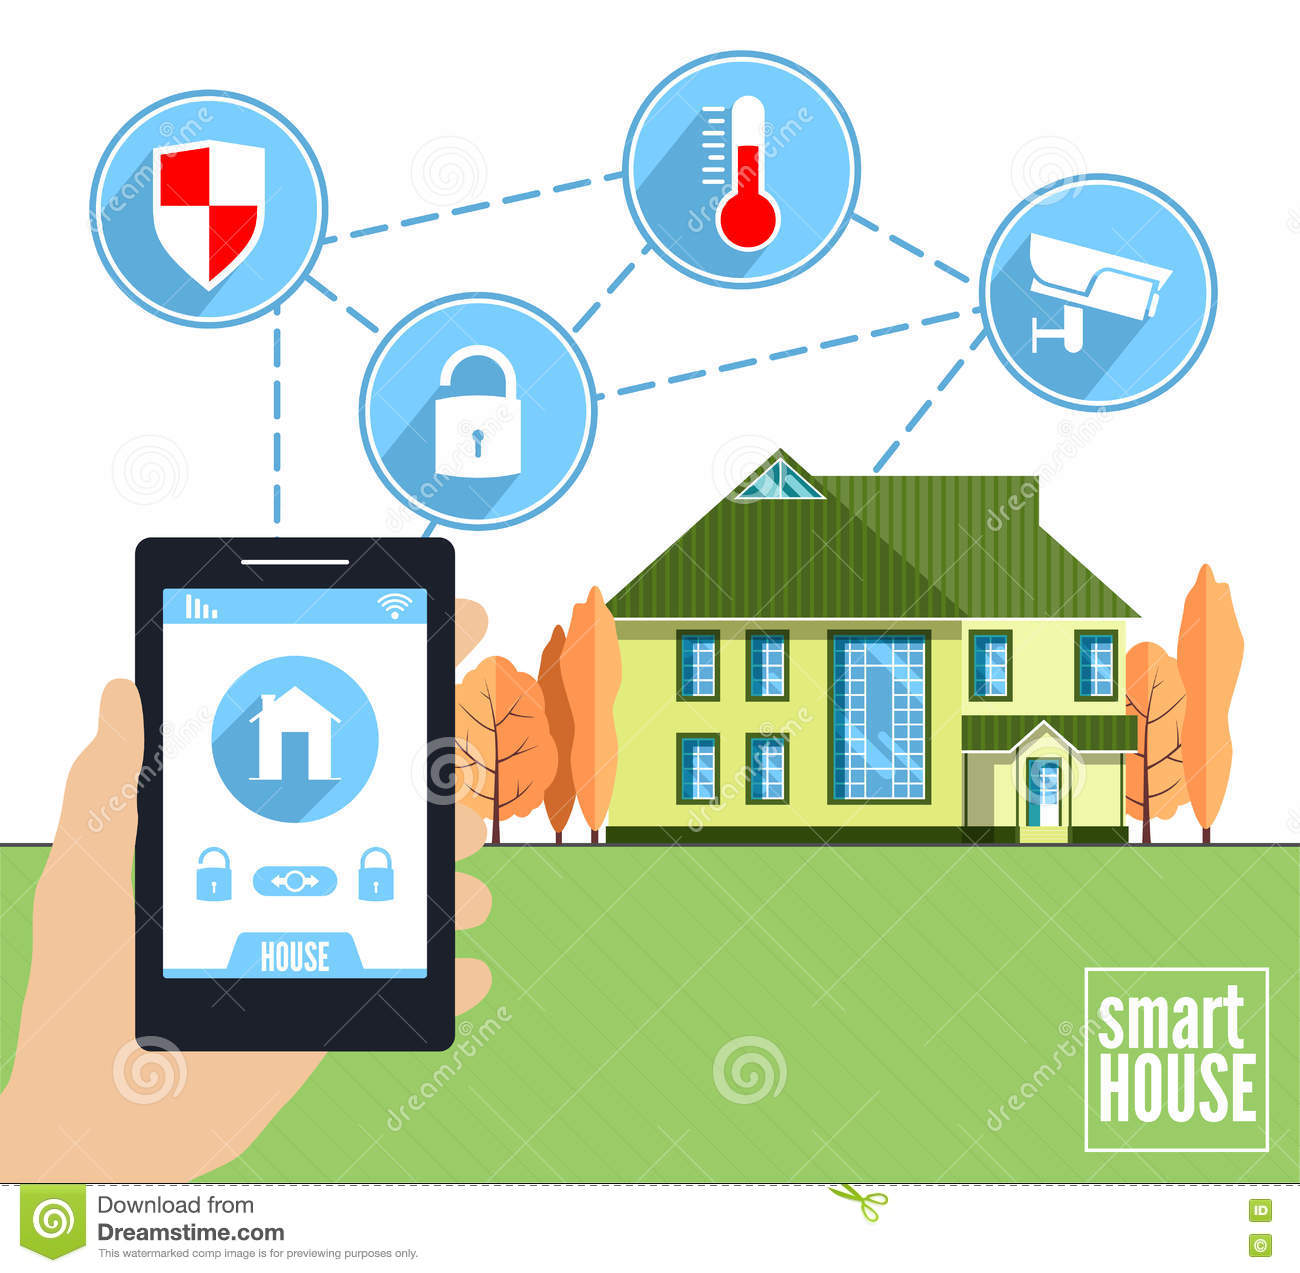 Intrnet technology stock image 21162565 for Smart home technology definition